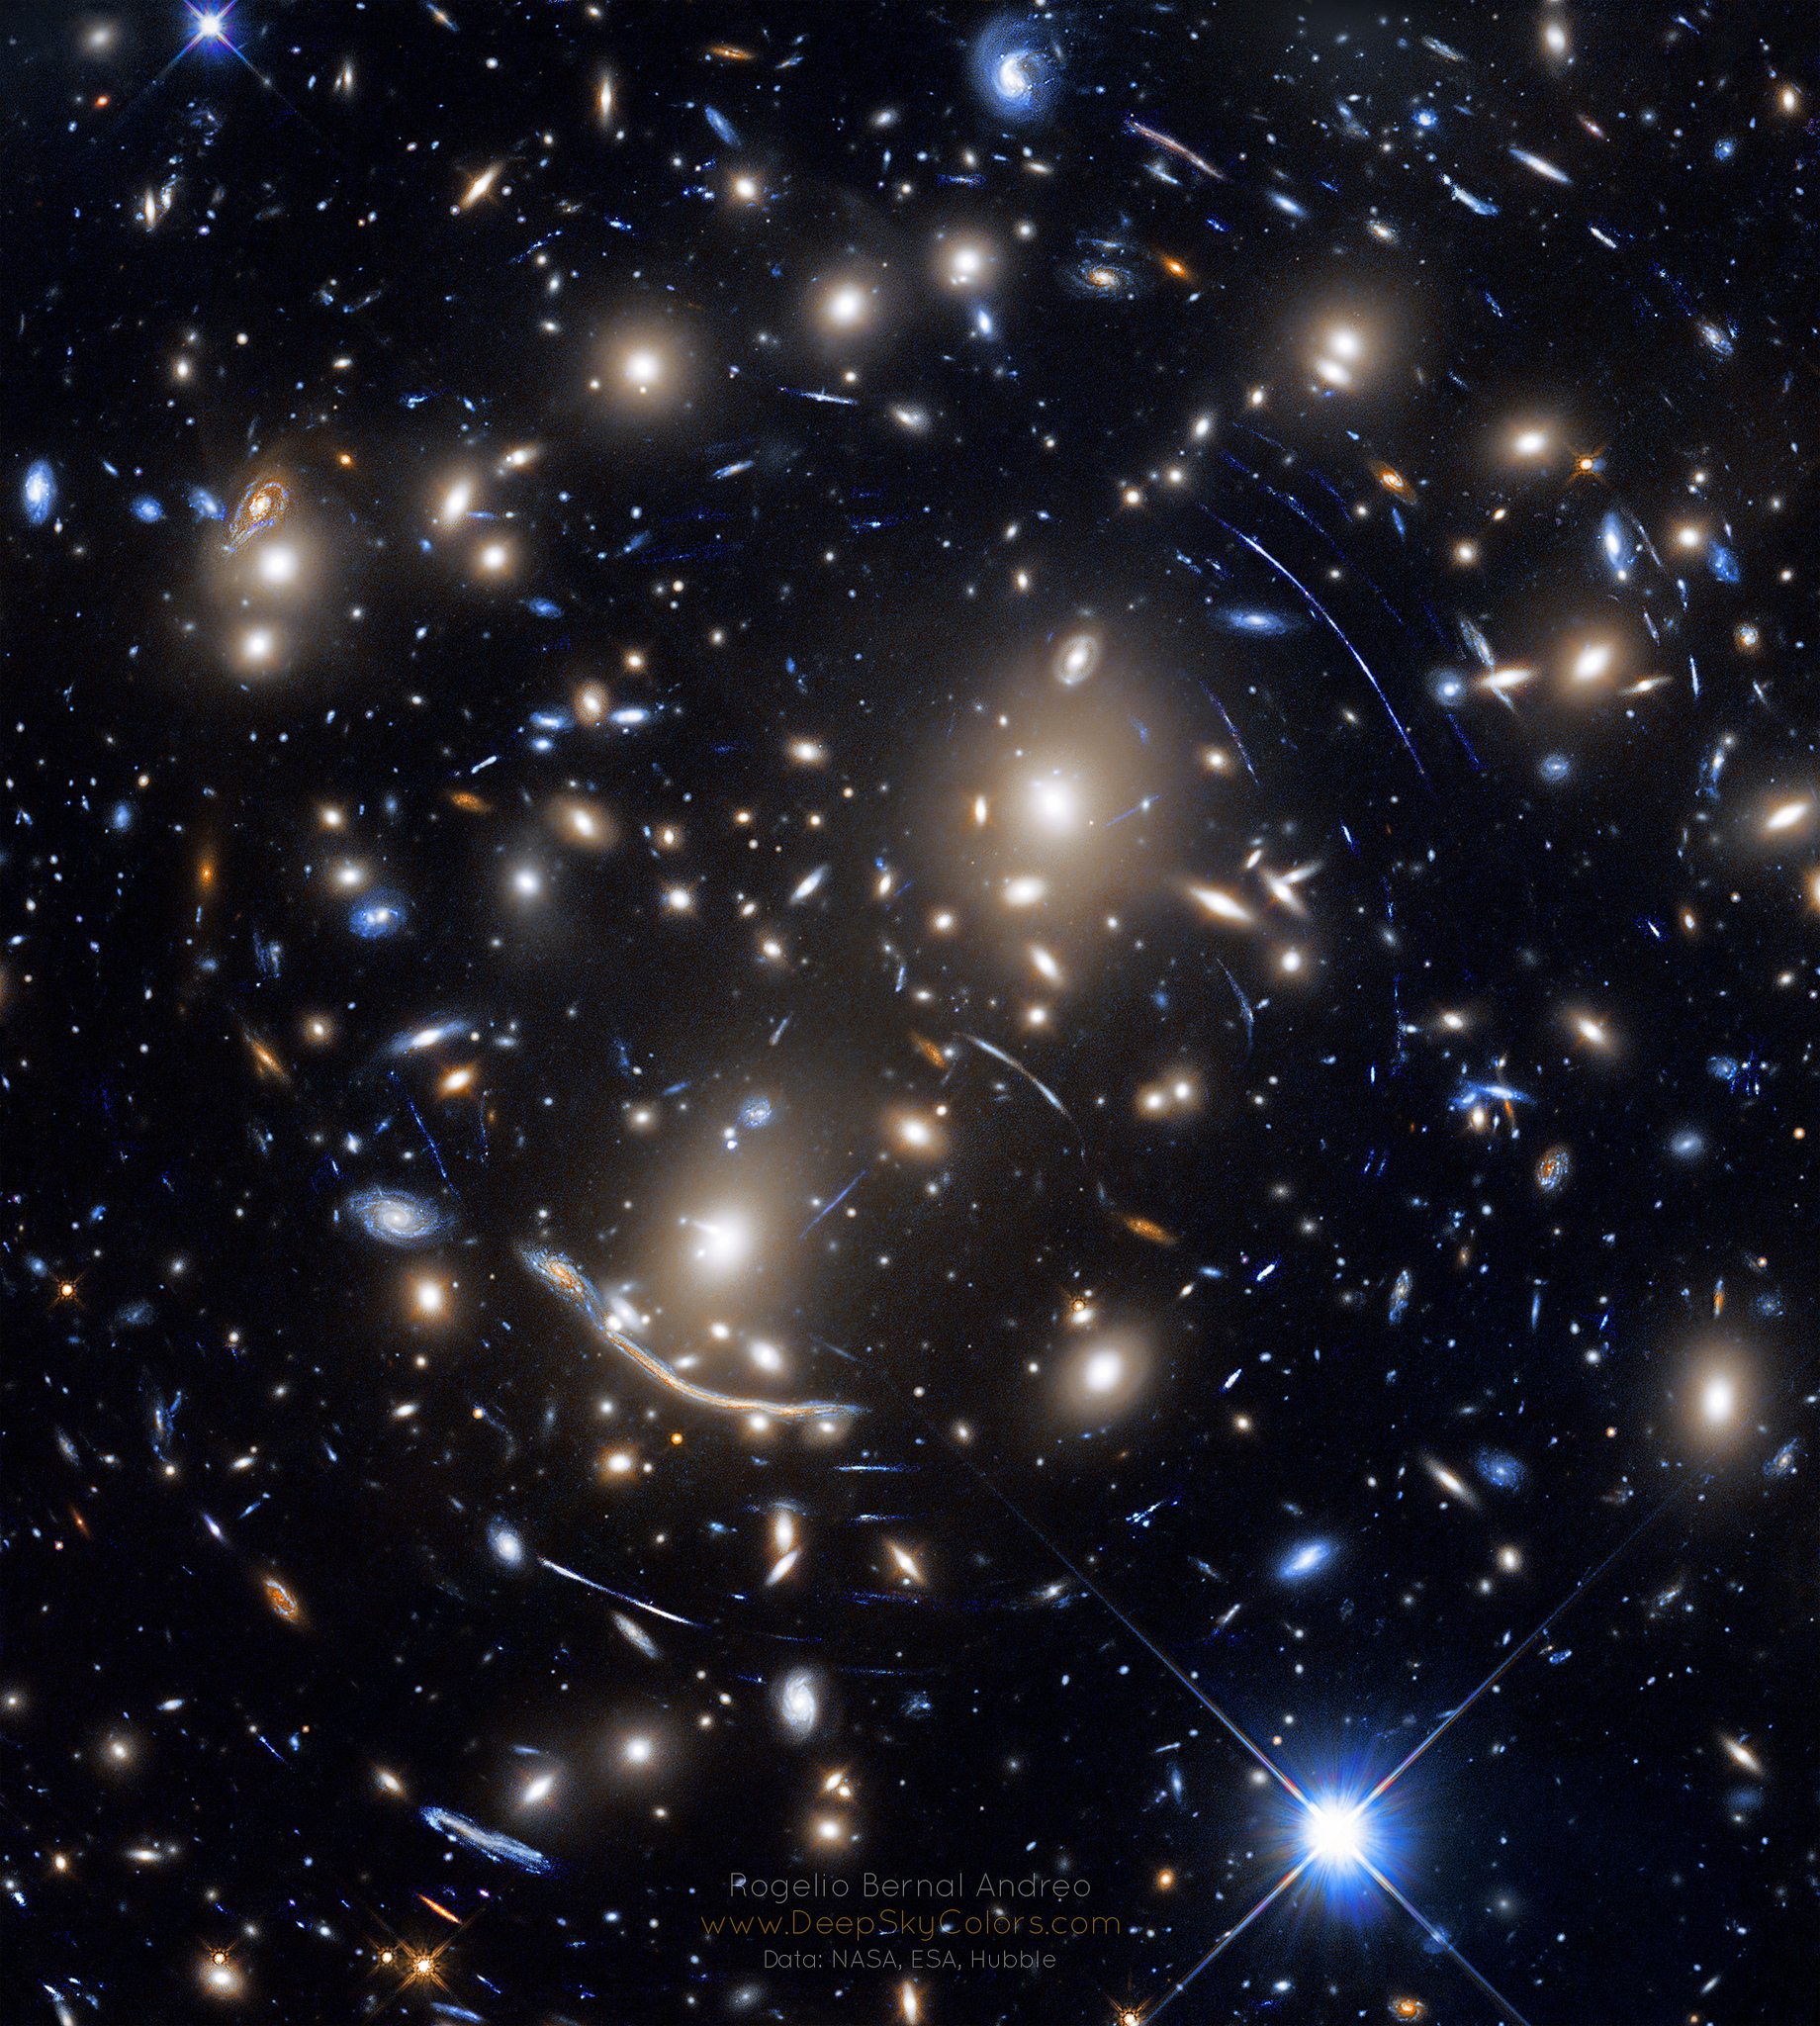 2019 March 19 - Abell 370: Galaxy Cluster Gravitational Lens